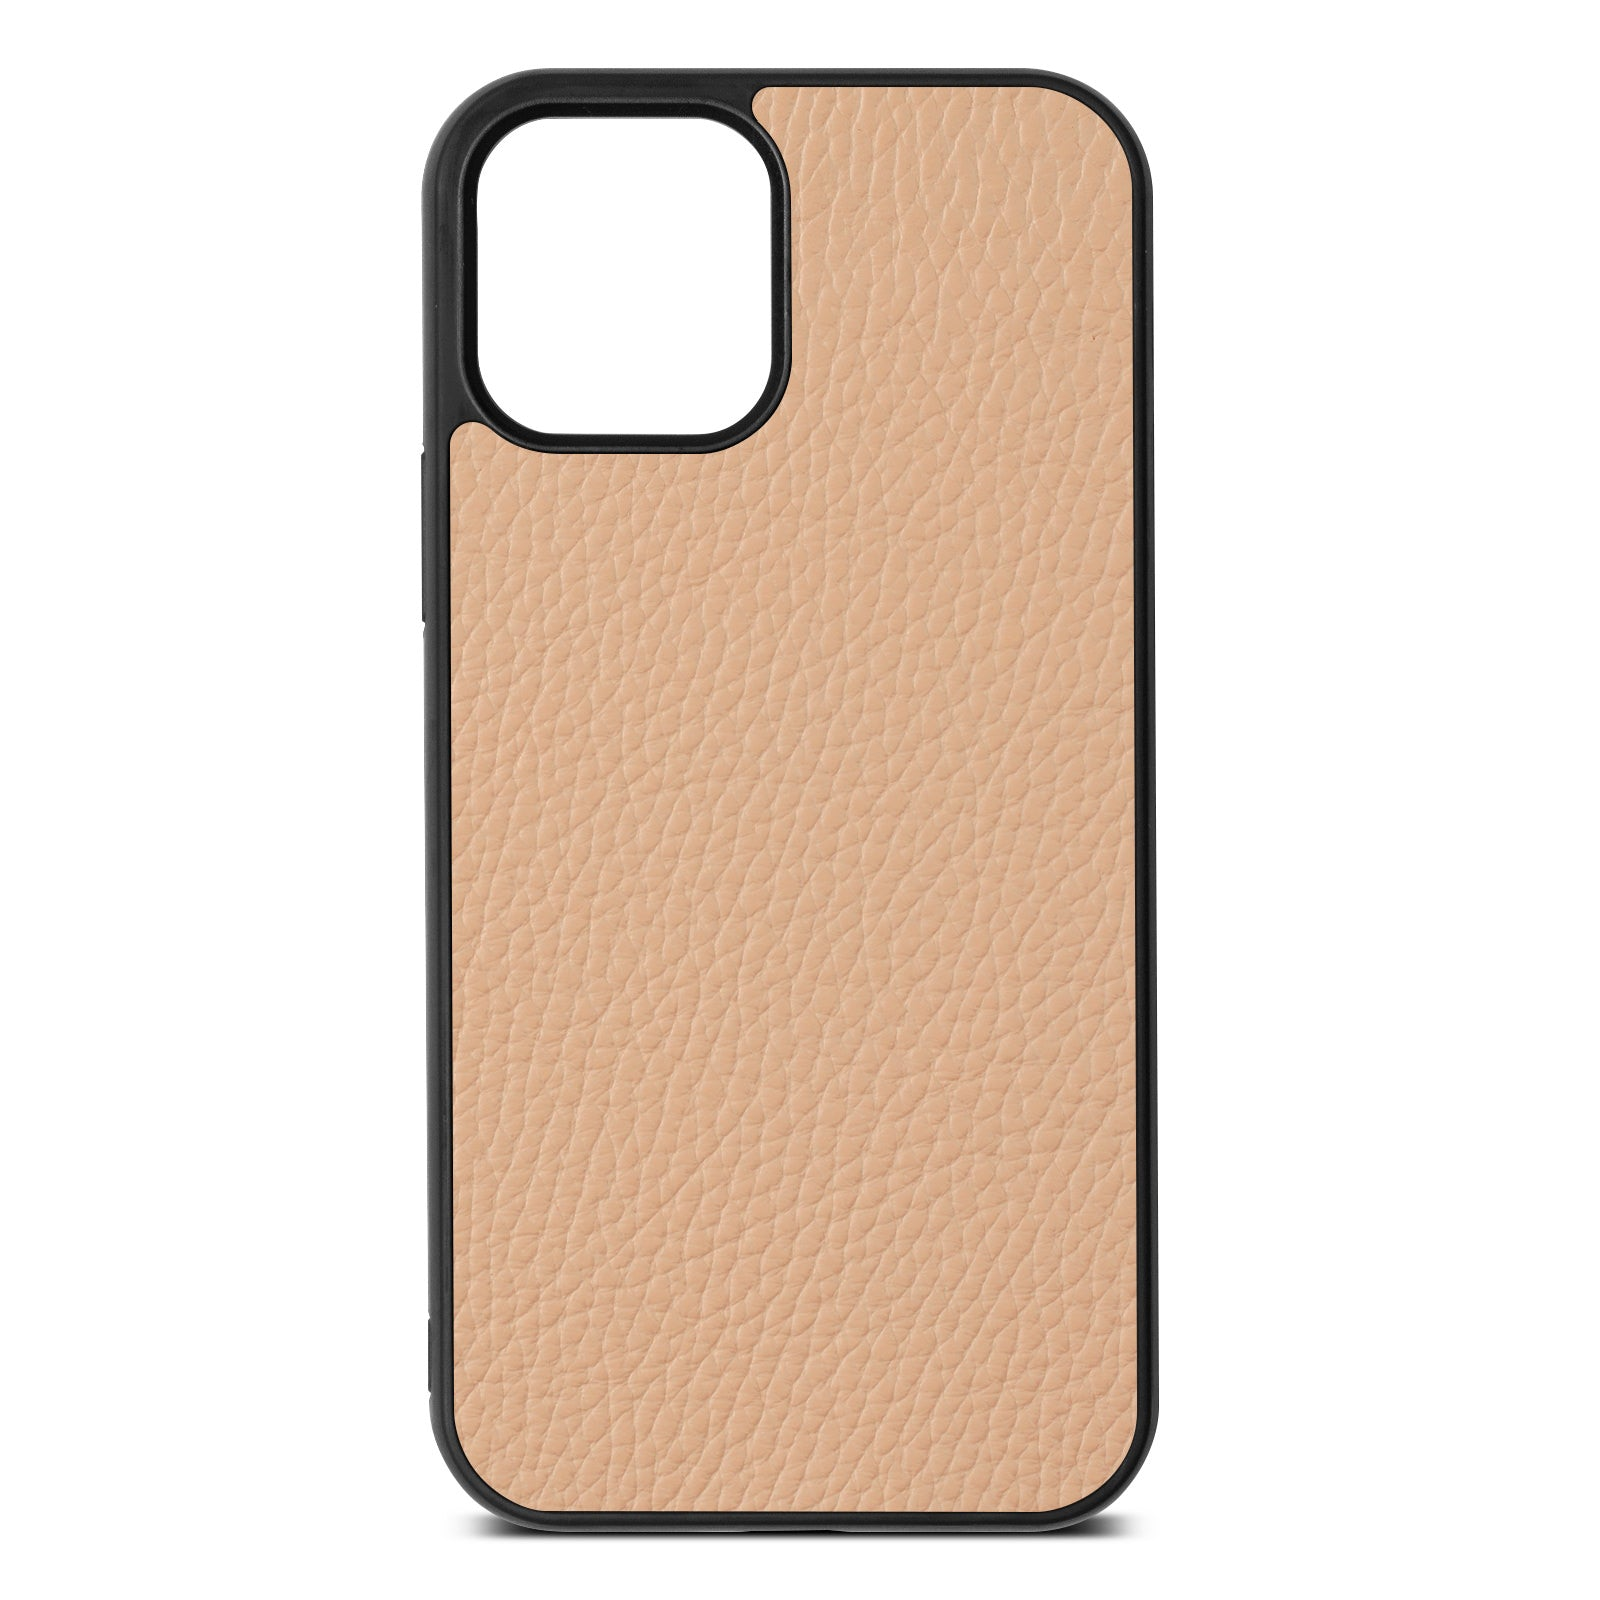 Blank iPhone 12 Nude Pebble Leather Case